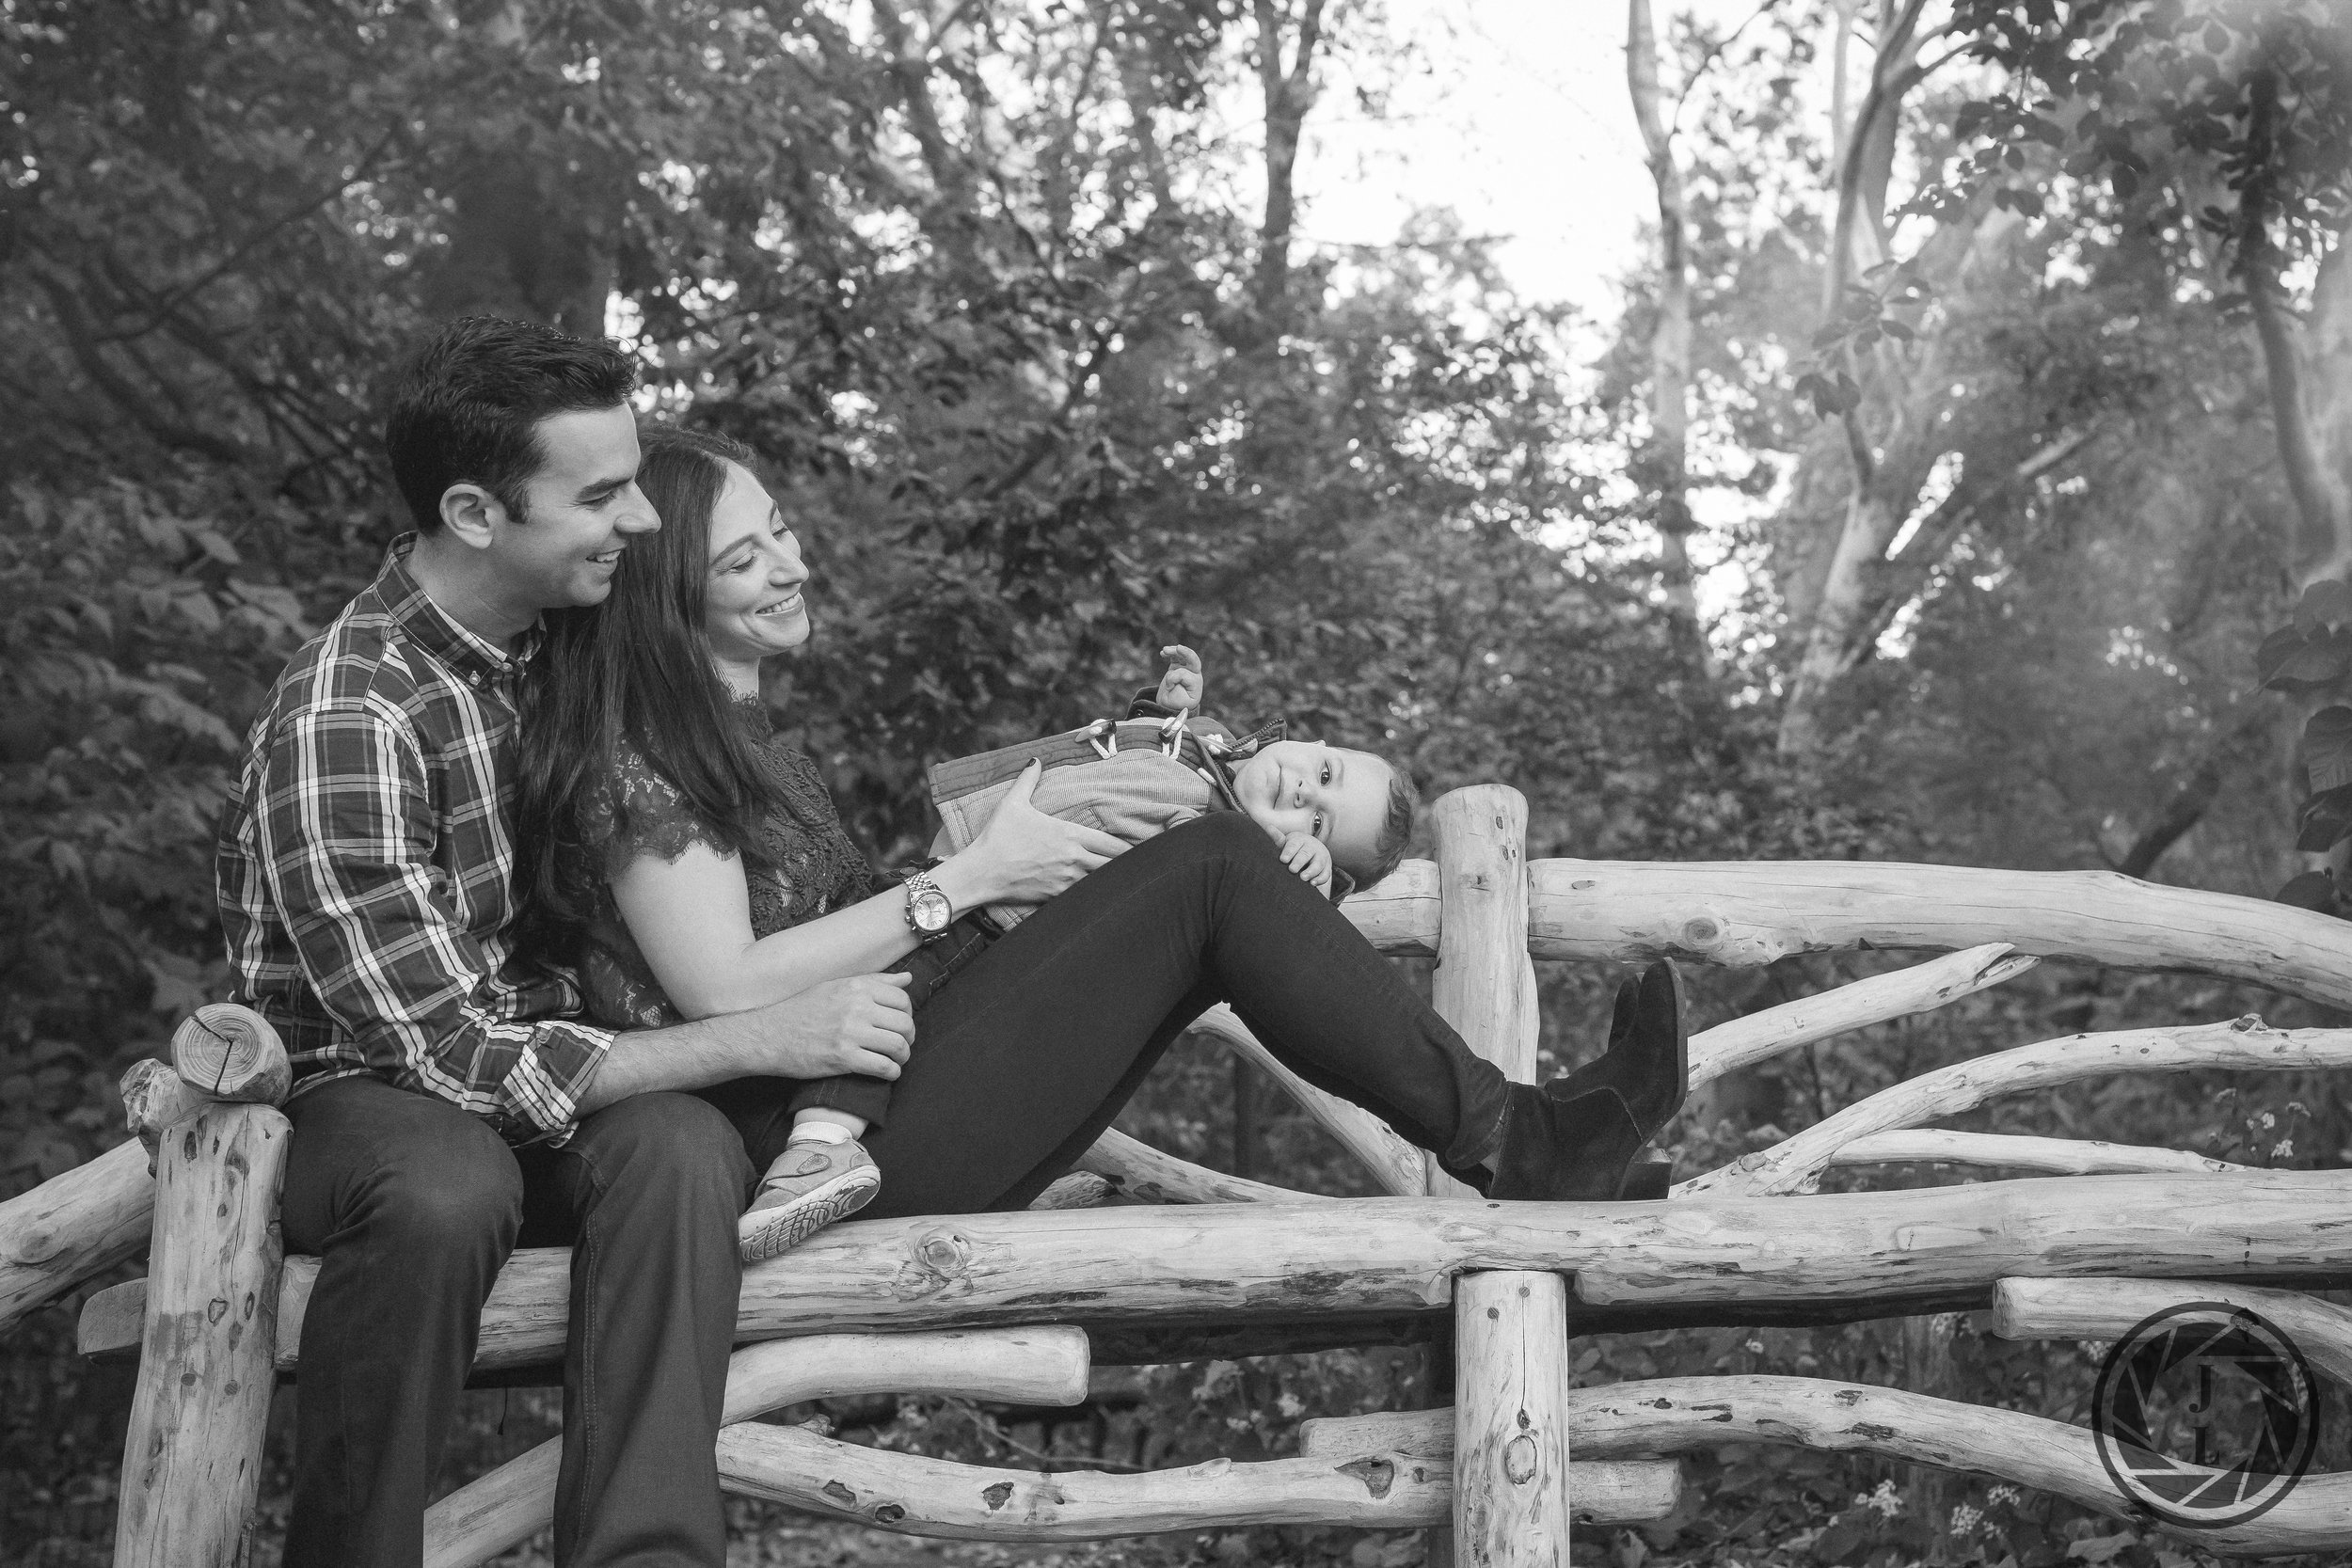 A family of three laughing in a candid pose on a park bench